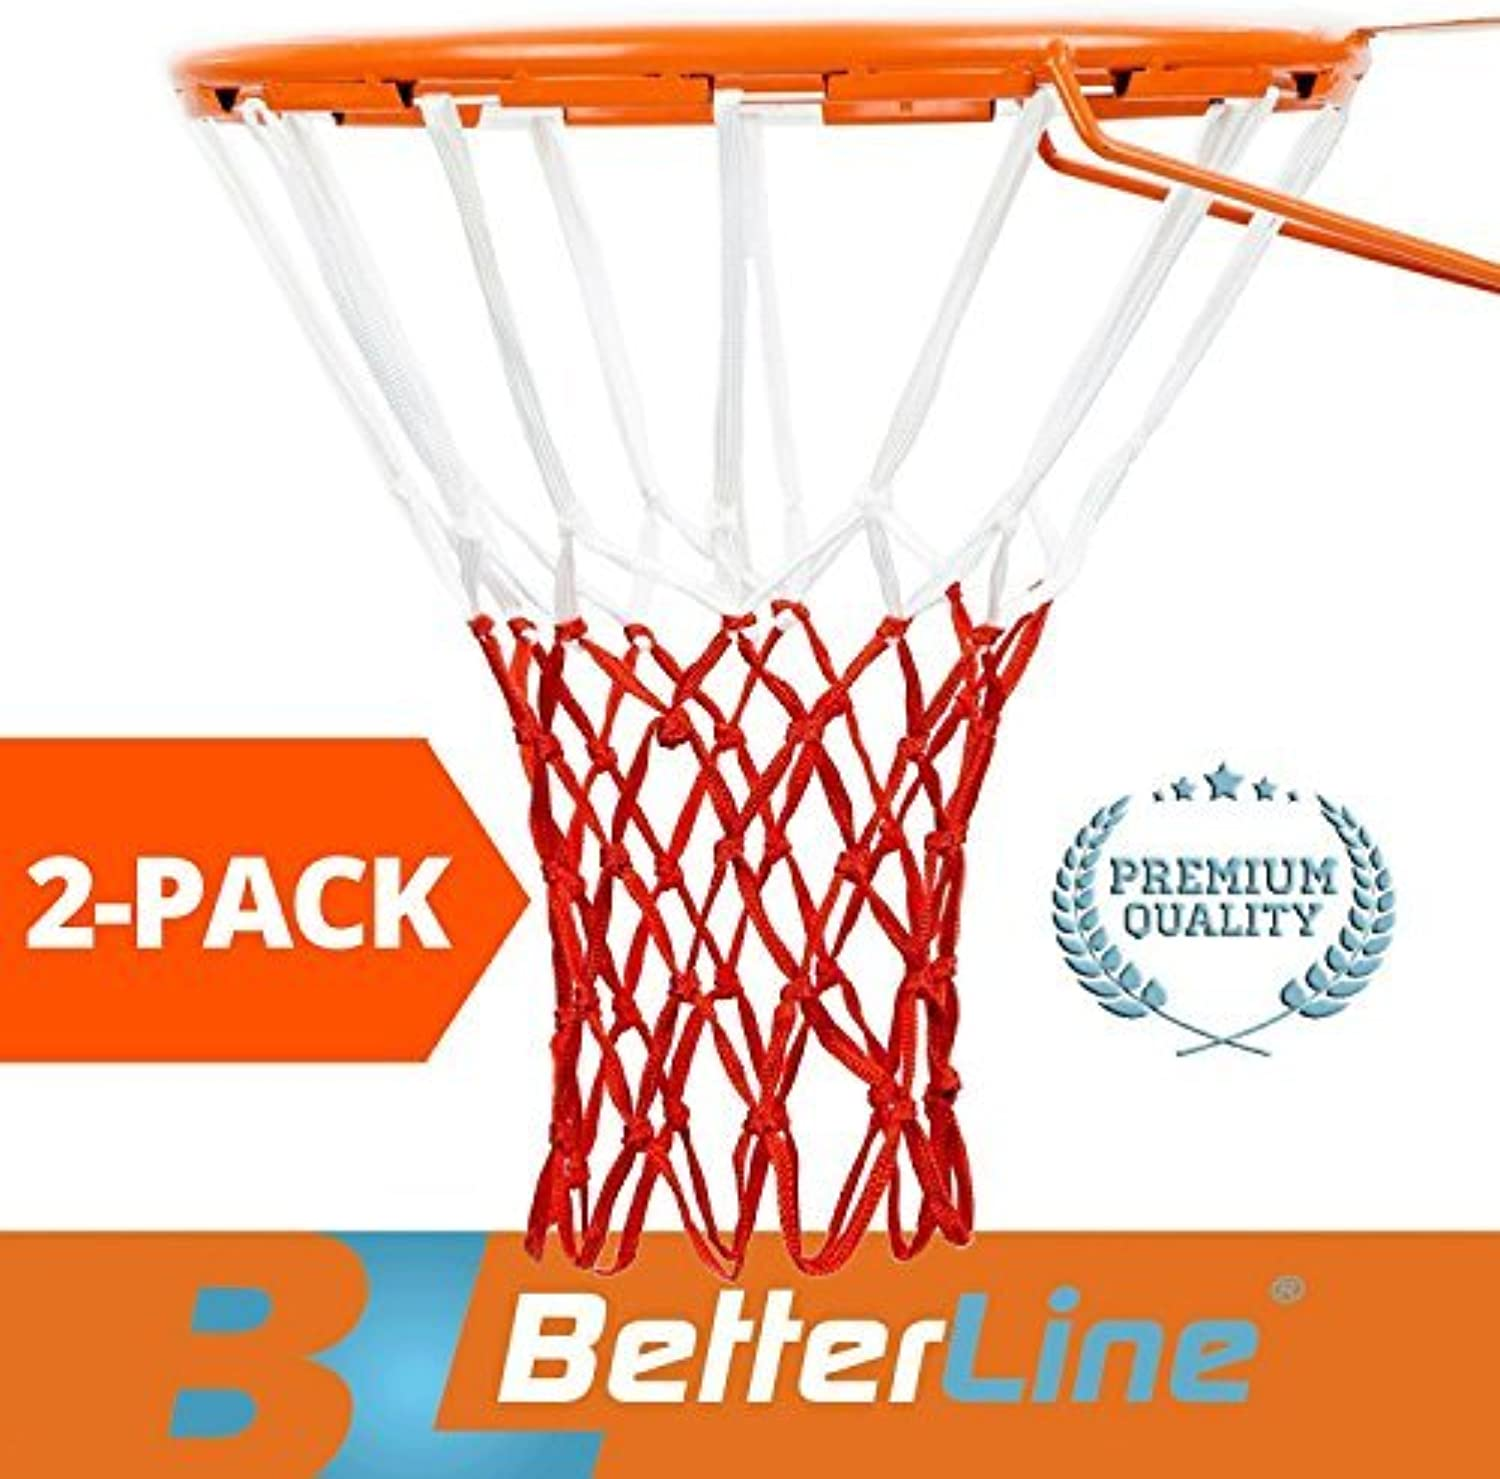 BETTERLINE 2-Pack Basketball Nets   Heavy Duty Quality All-Weather Thick Net   Multi-Pack - 12 Loop Nets (Red and White) - 2 Basketball Nets in Pack - for Indoor and Outdoor Use